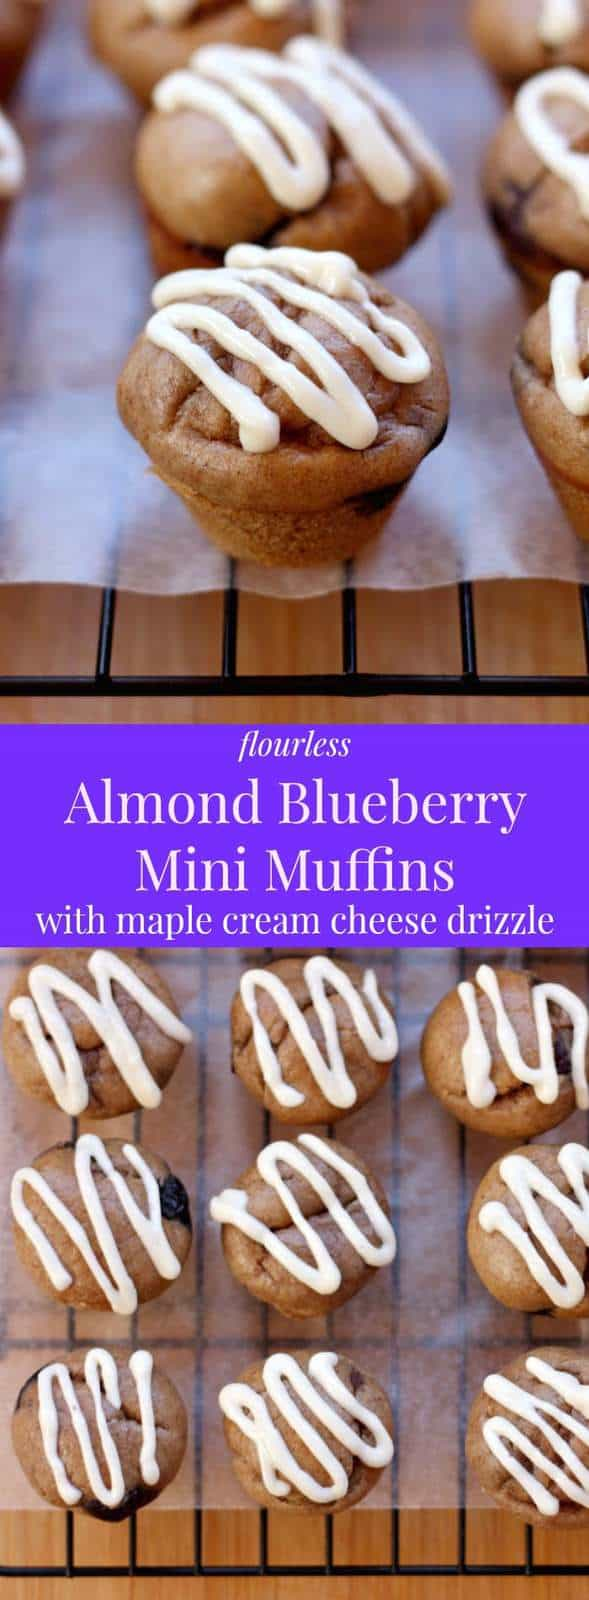 Flourless Almond Blueberry Mini Muffins - a simple snack or bite-sized breakfast recipe that's naturally gluten-free and packed with healthy ingredients, The Maple Cream Cheese Drizzle is the perfect addition! | cupcakesandkalechips.com